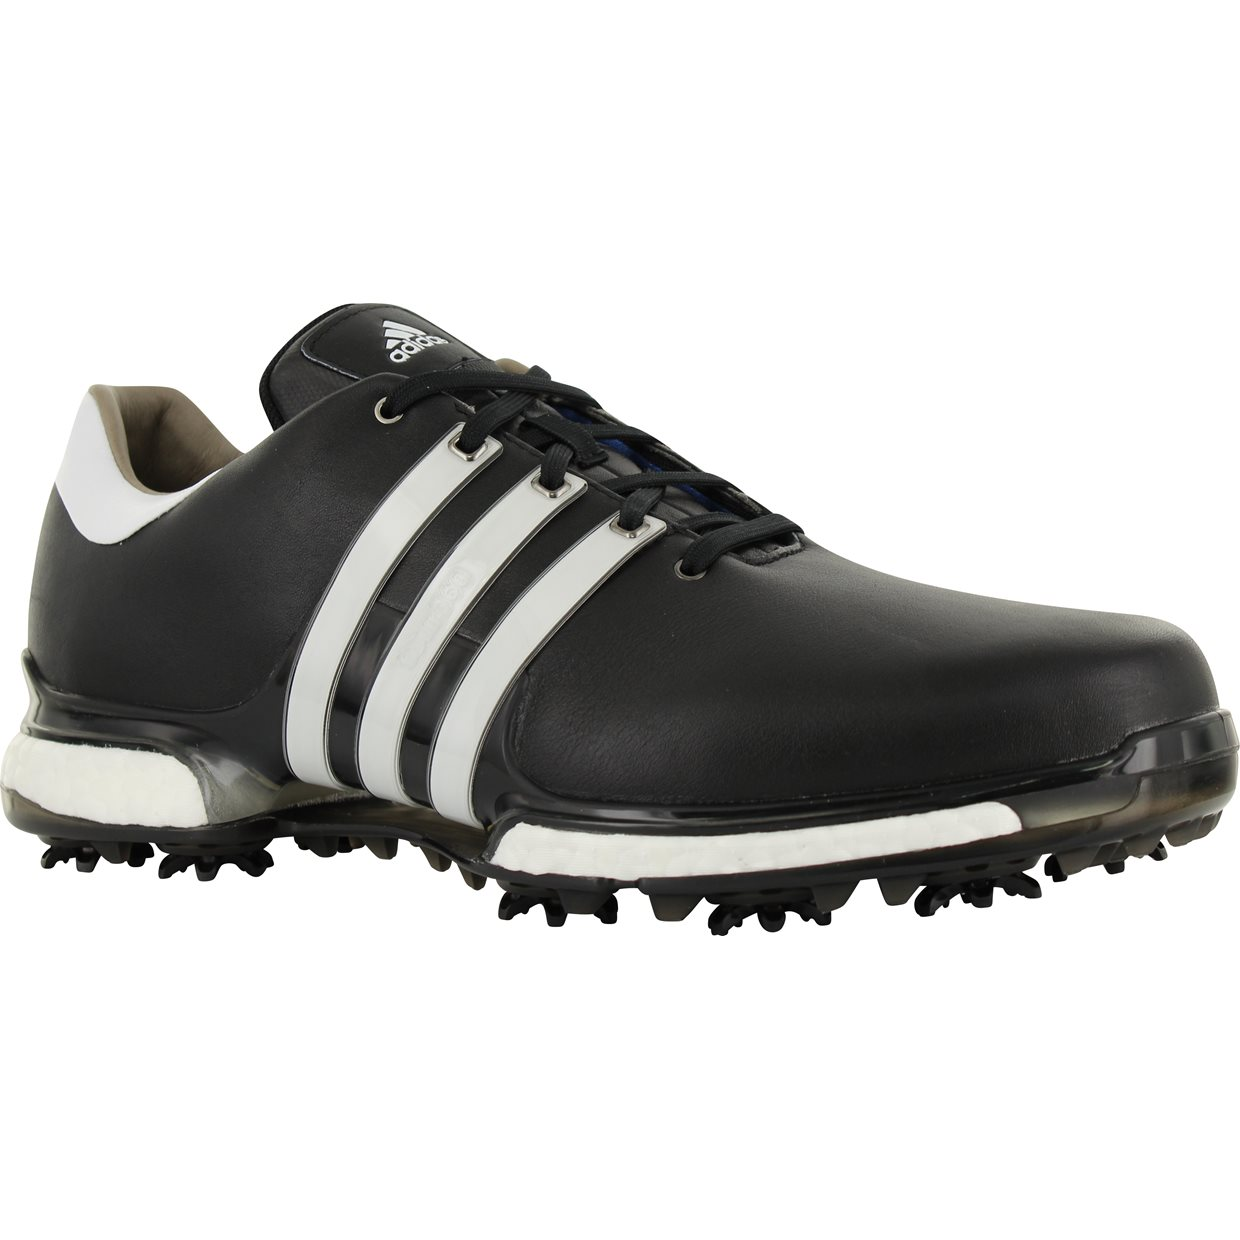 bba95719982f Adidas Tour 360 Boost 2.0 Golf Shoes at GlobalGolf.com